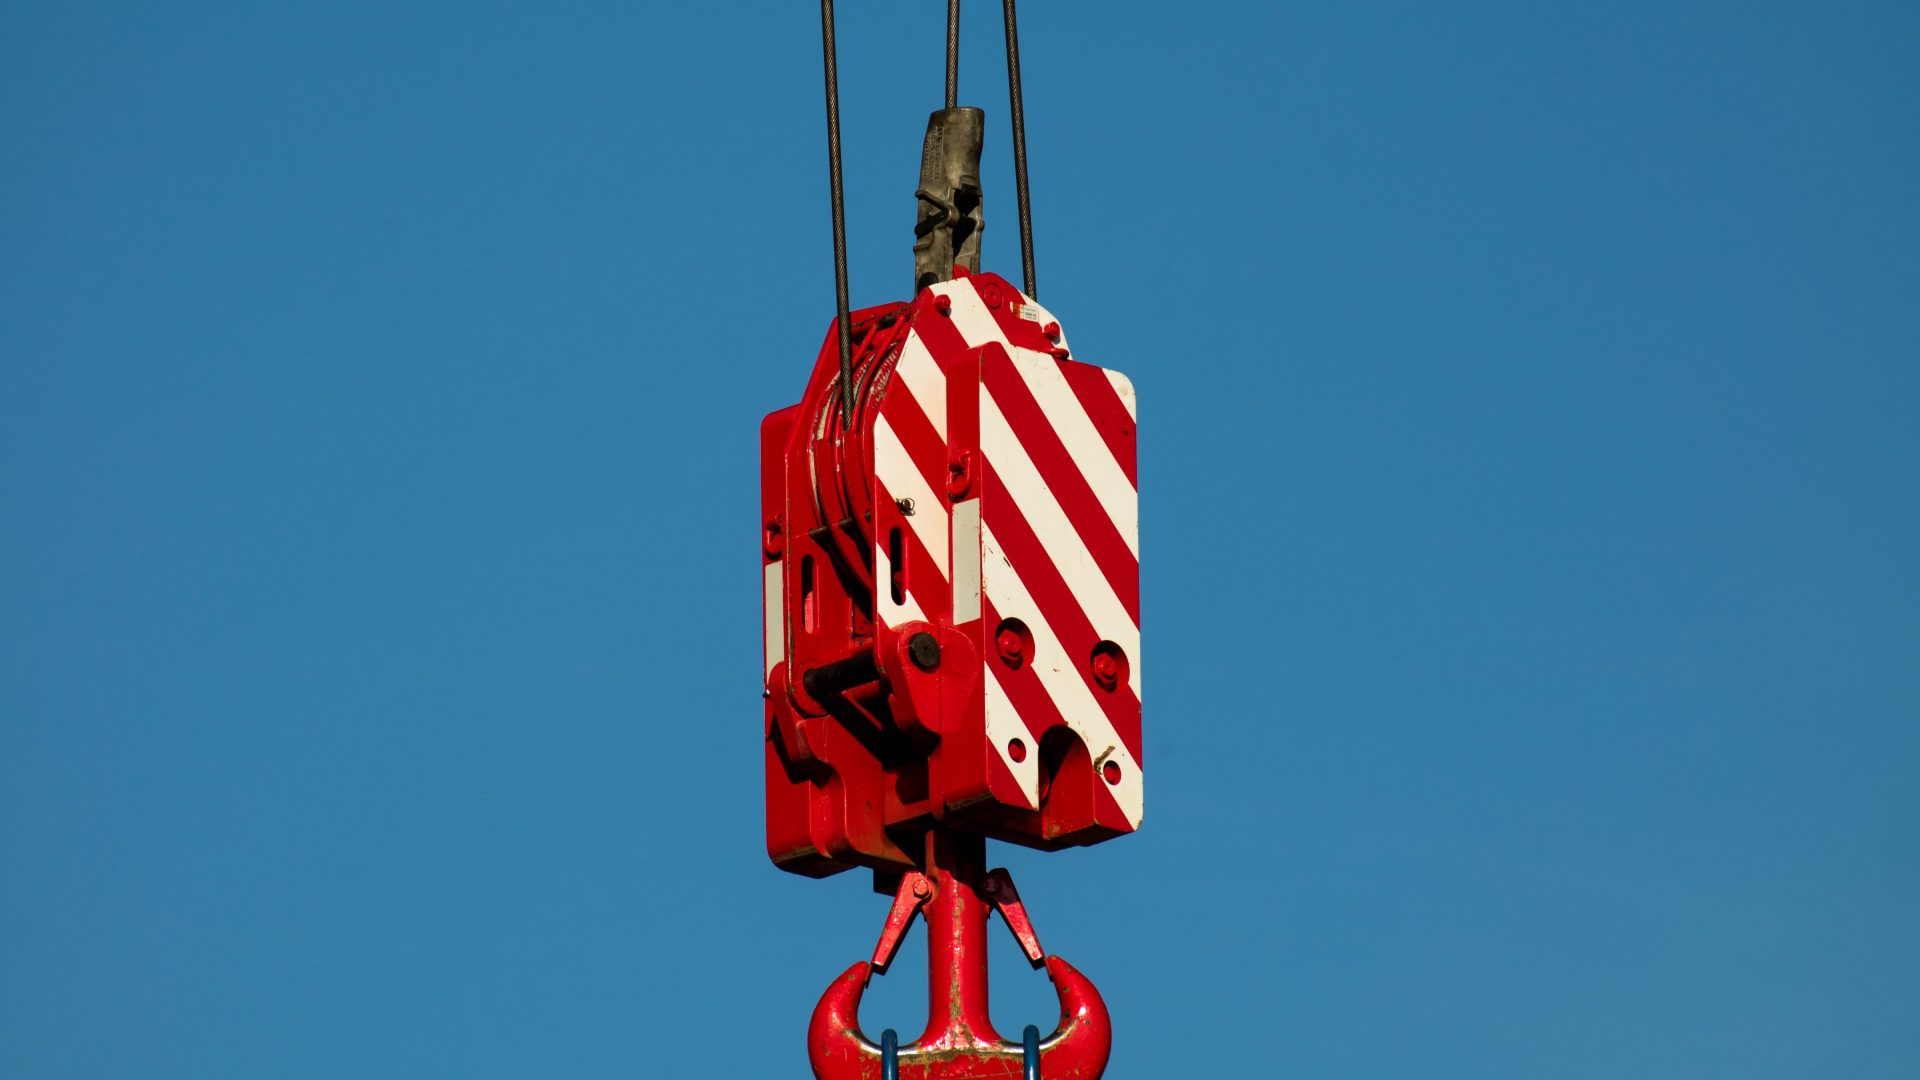 blue-sky-construction-crane-533227